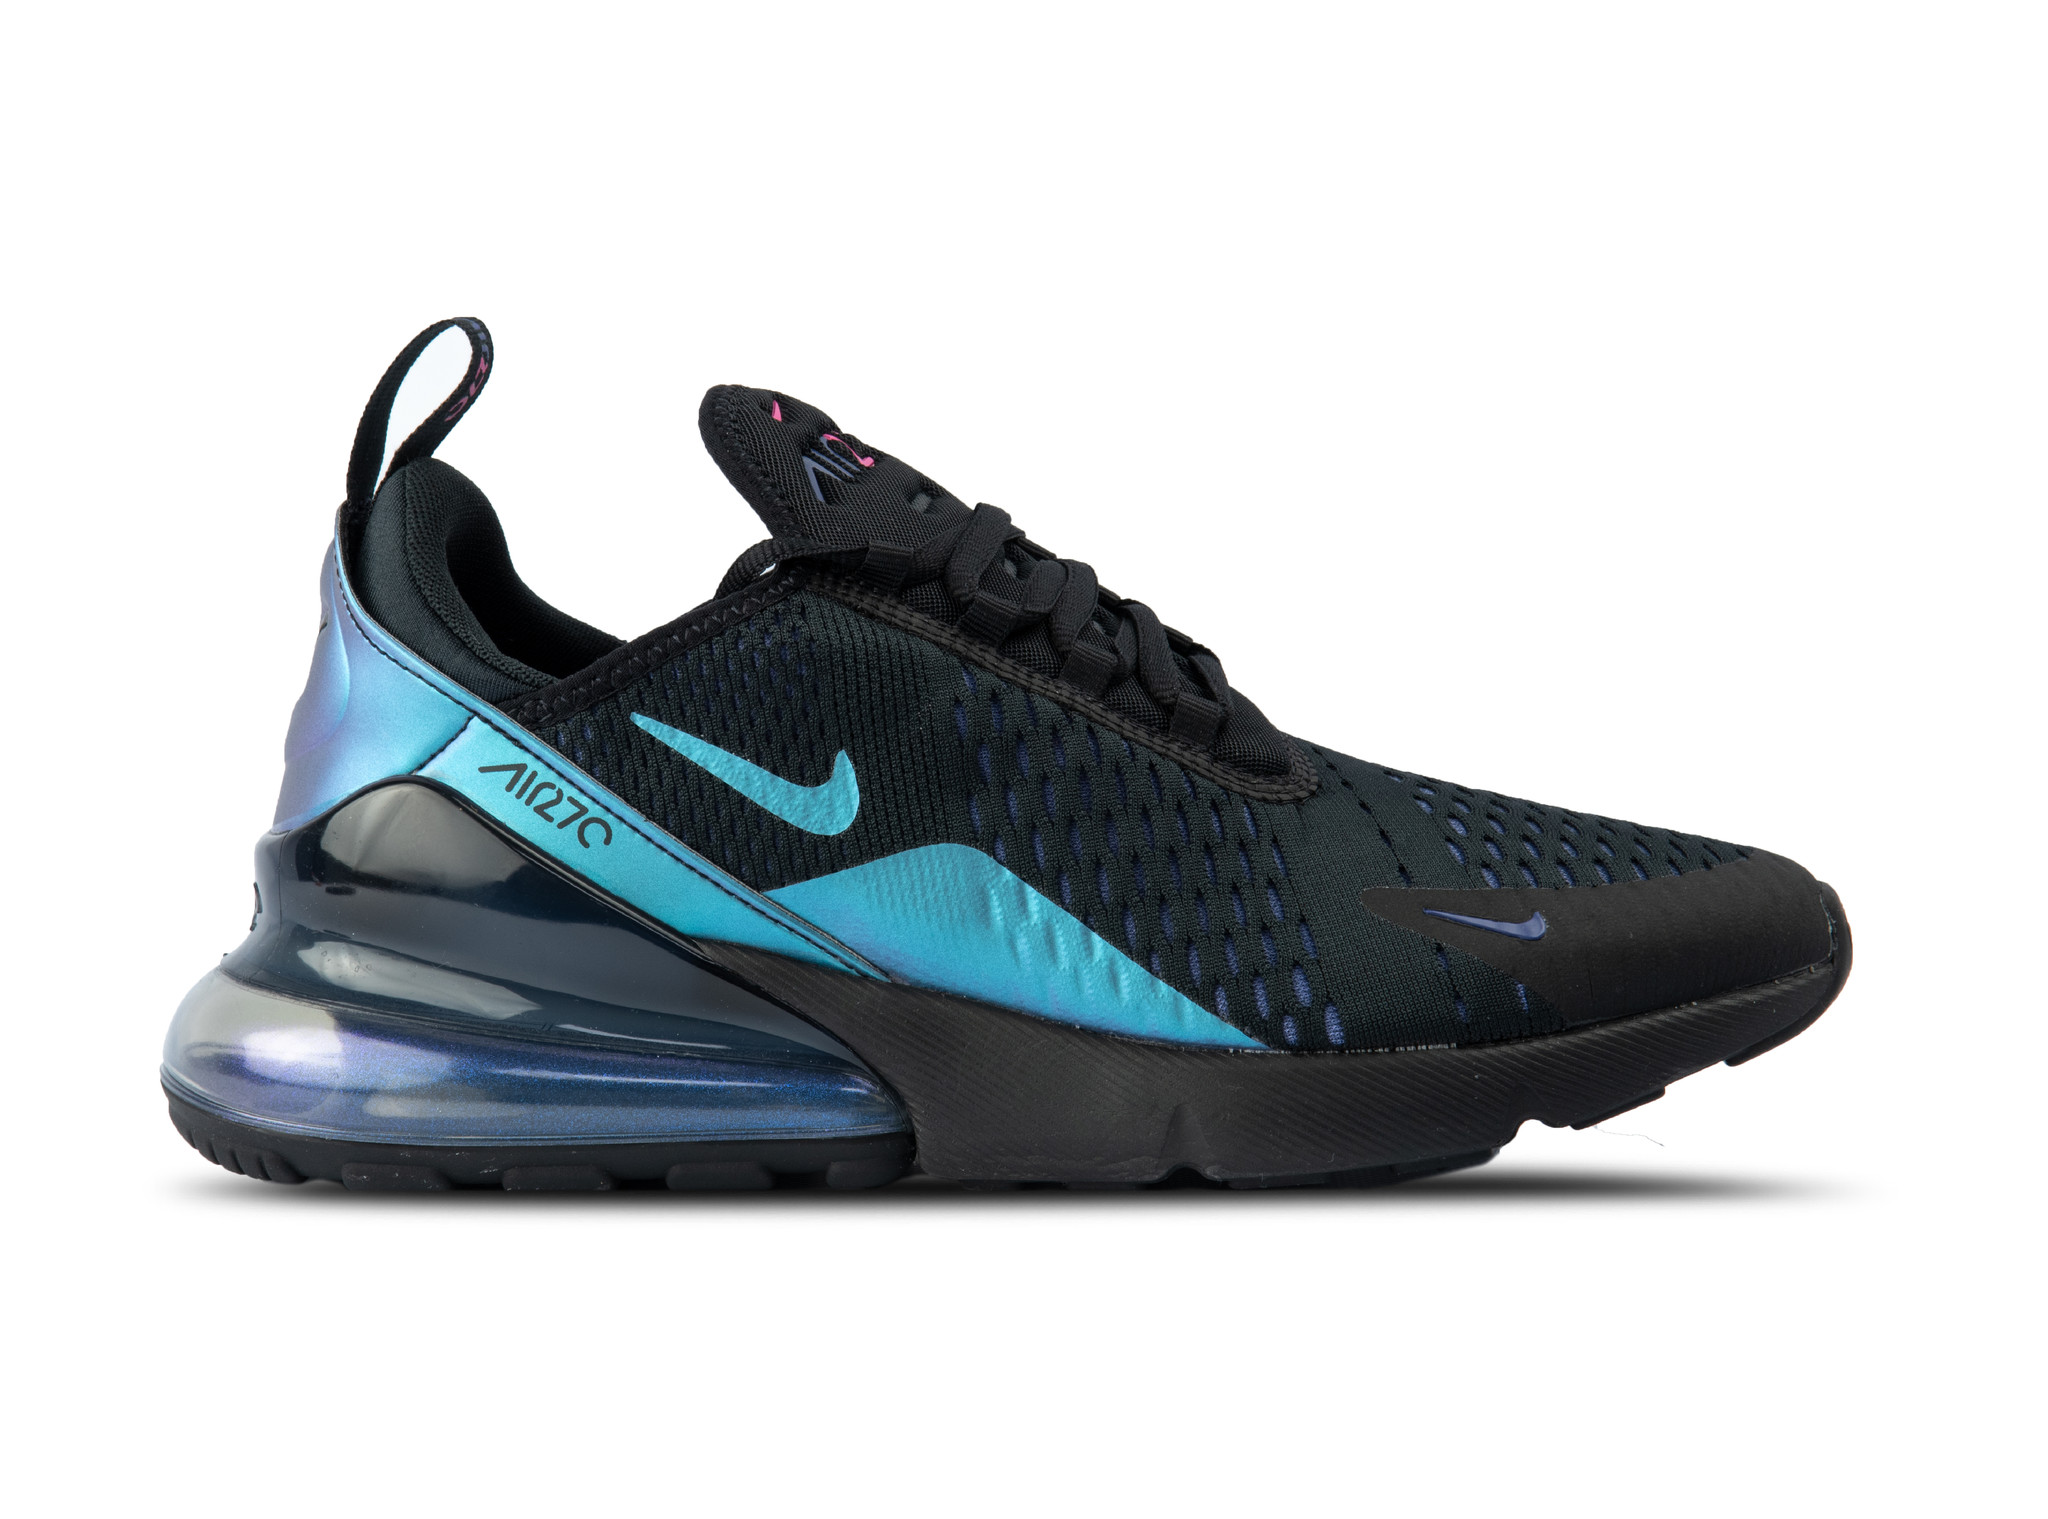 46f456a3ab Air Max 270 Black Laser Fuchsia AH8050 020 will be added to your shopping  card